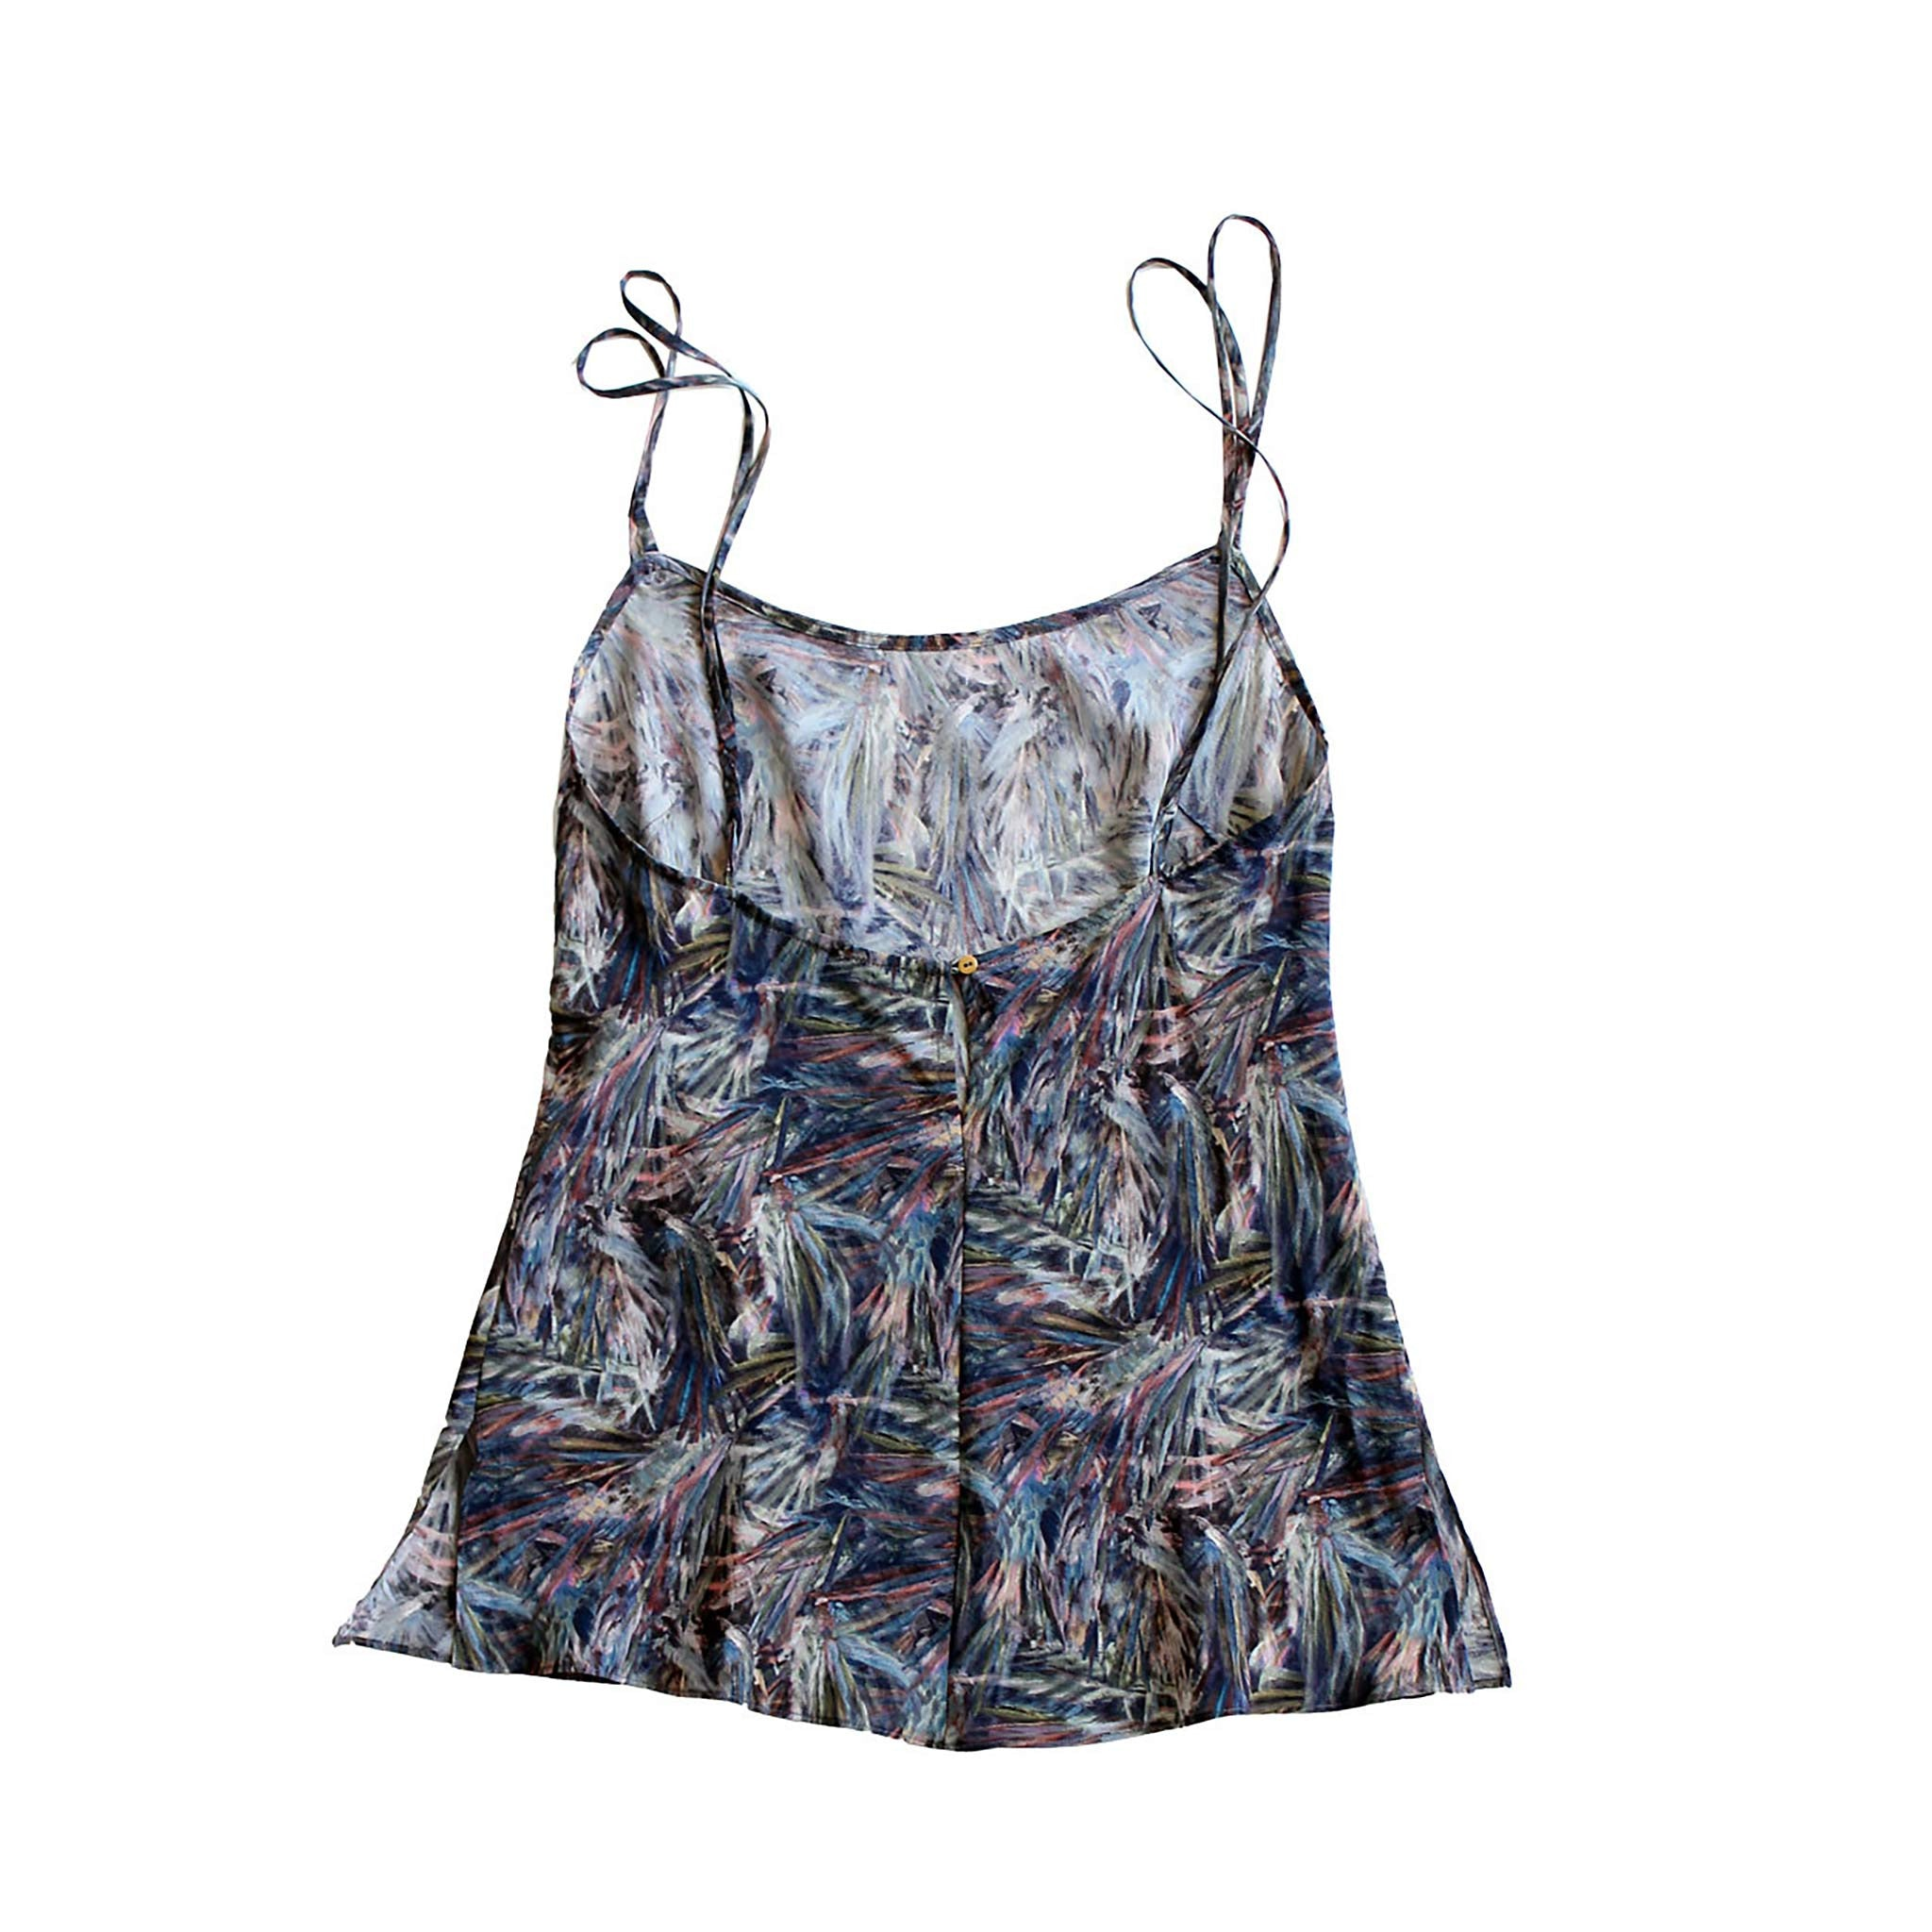 Olwen Camisole in Saxby Liberty Print Silk Crepe de Chine